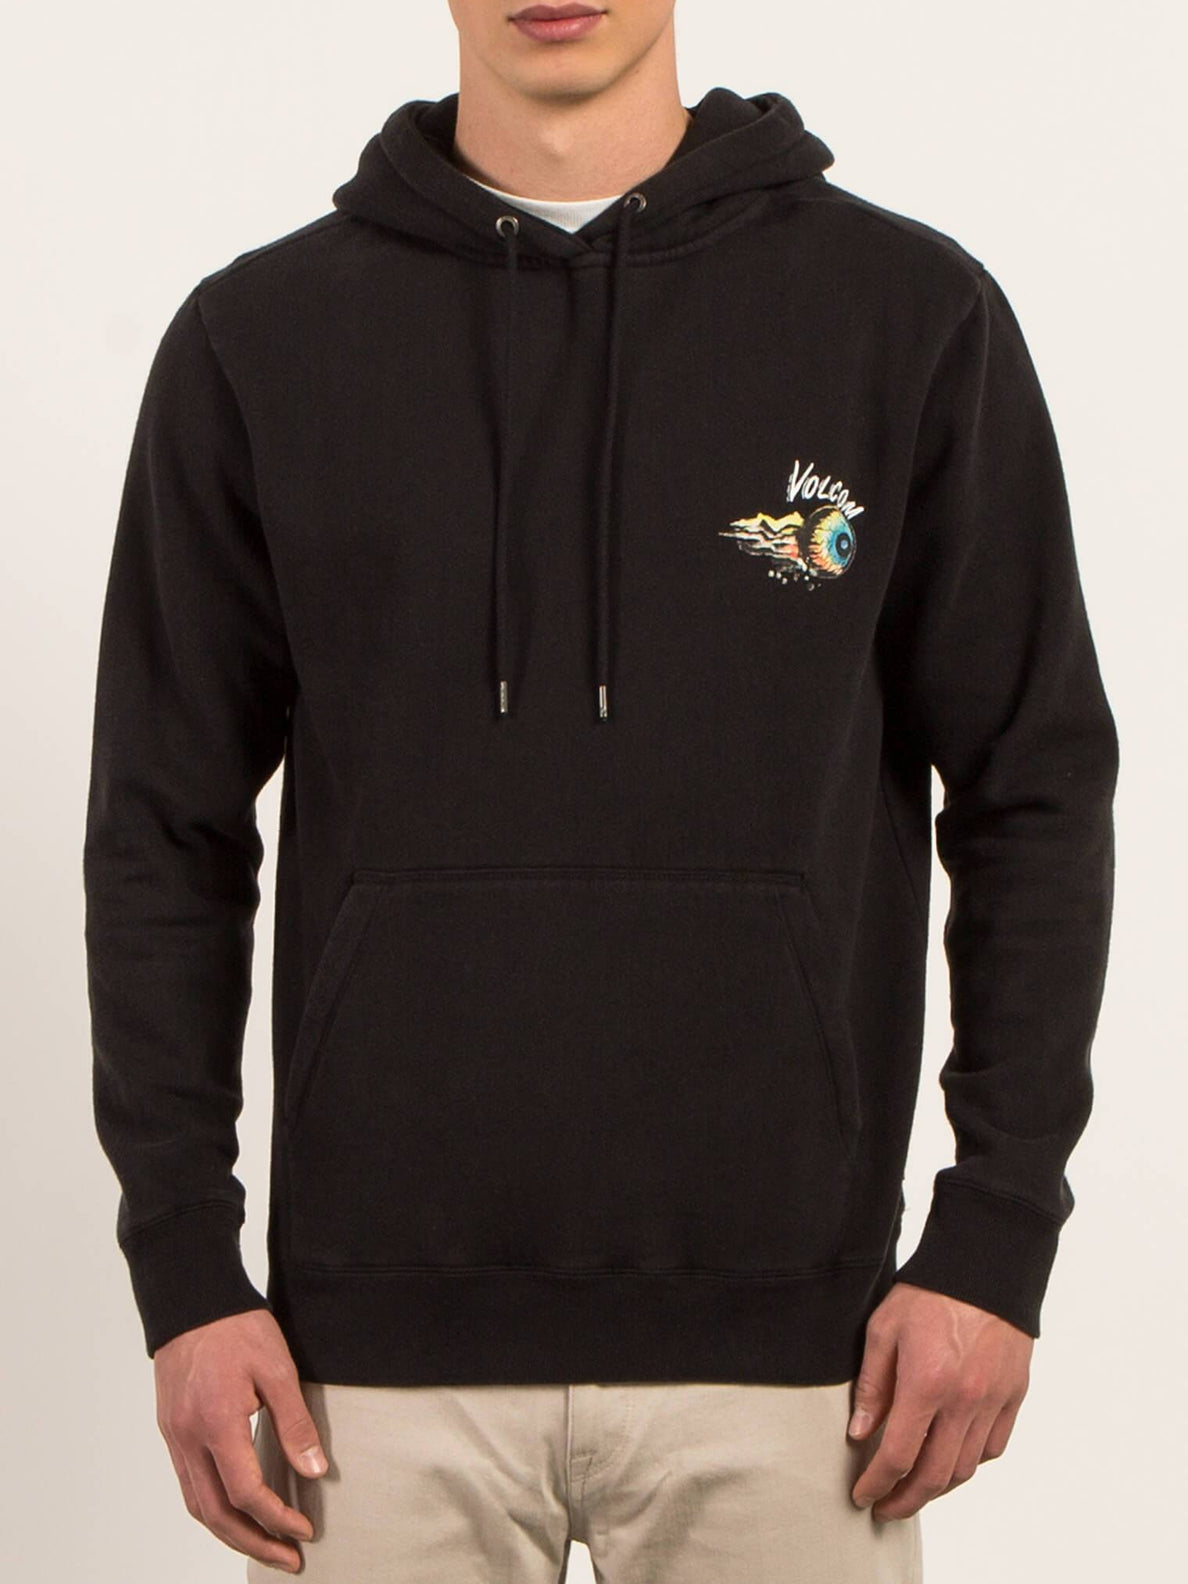 Reload Pullover Hoodie - Washed Black